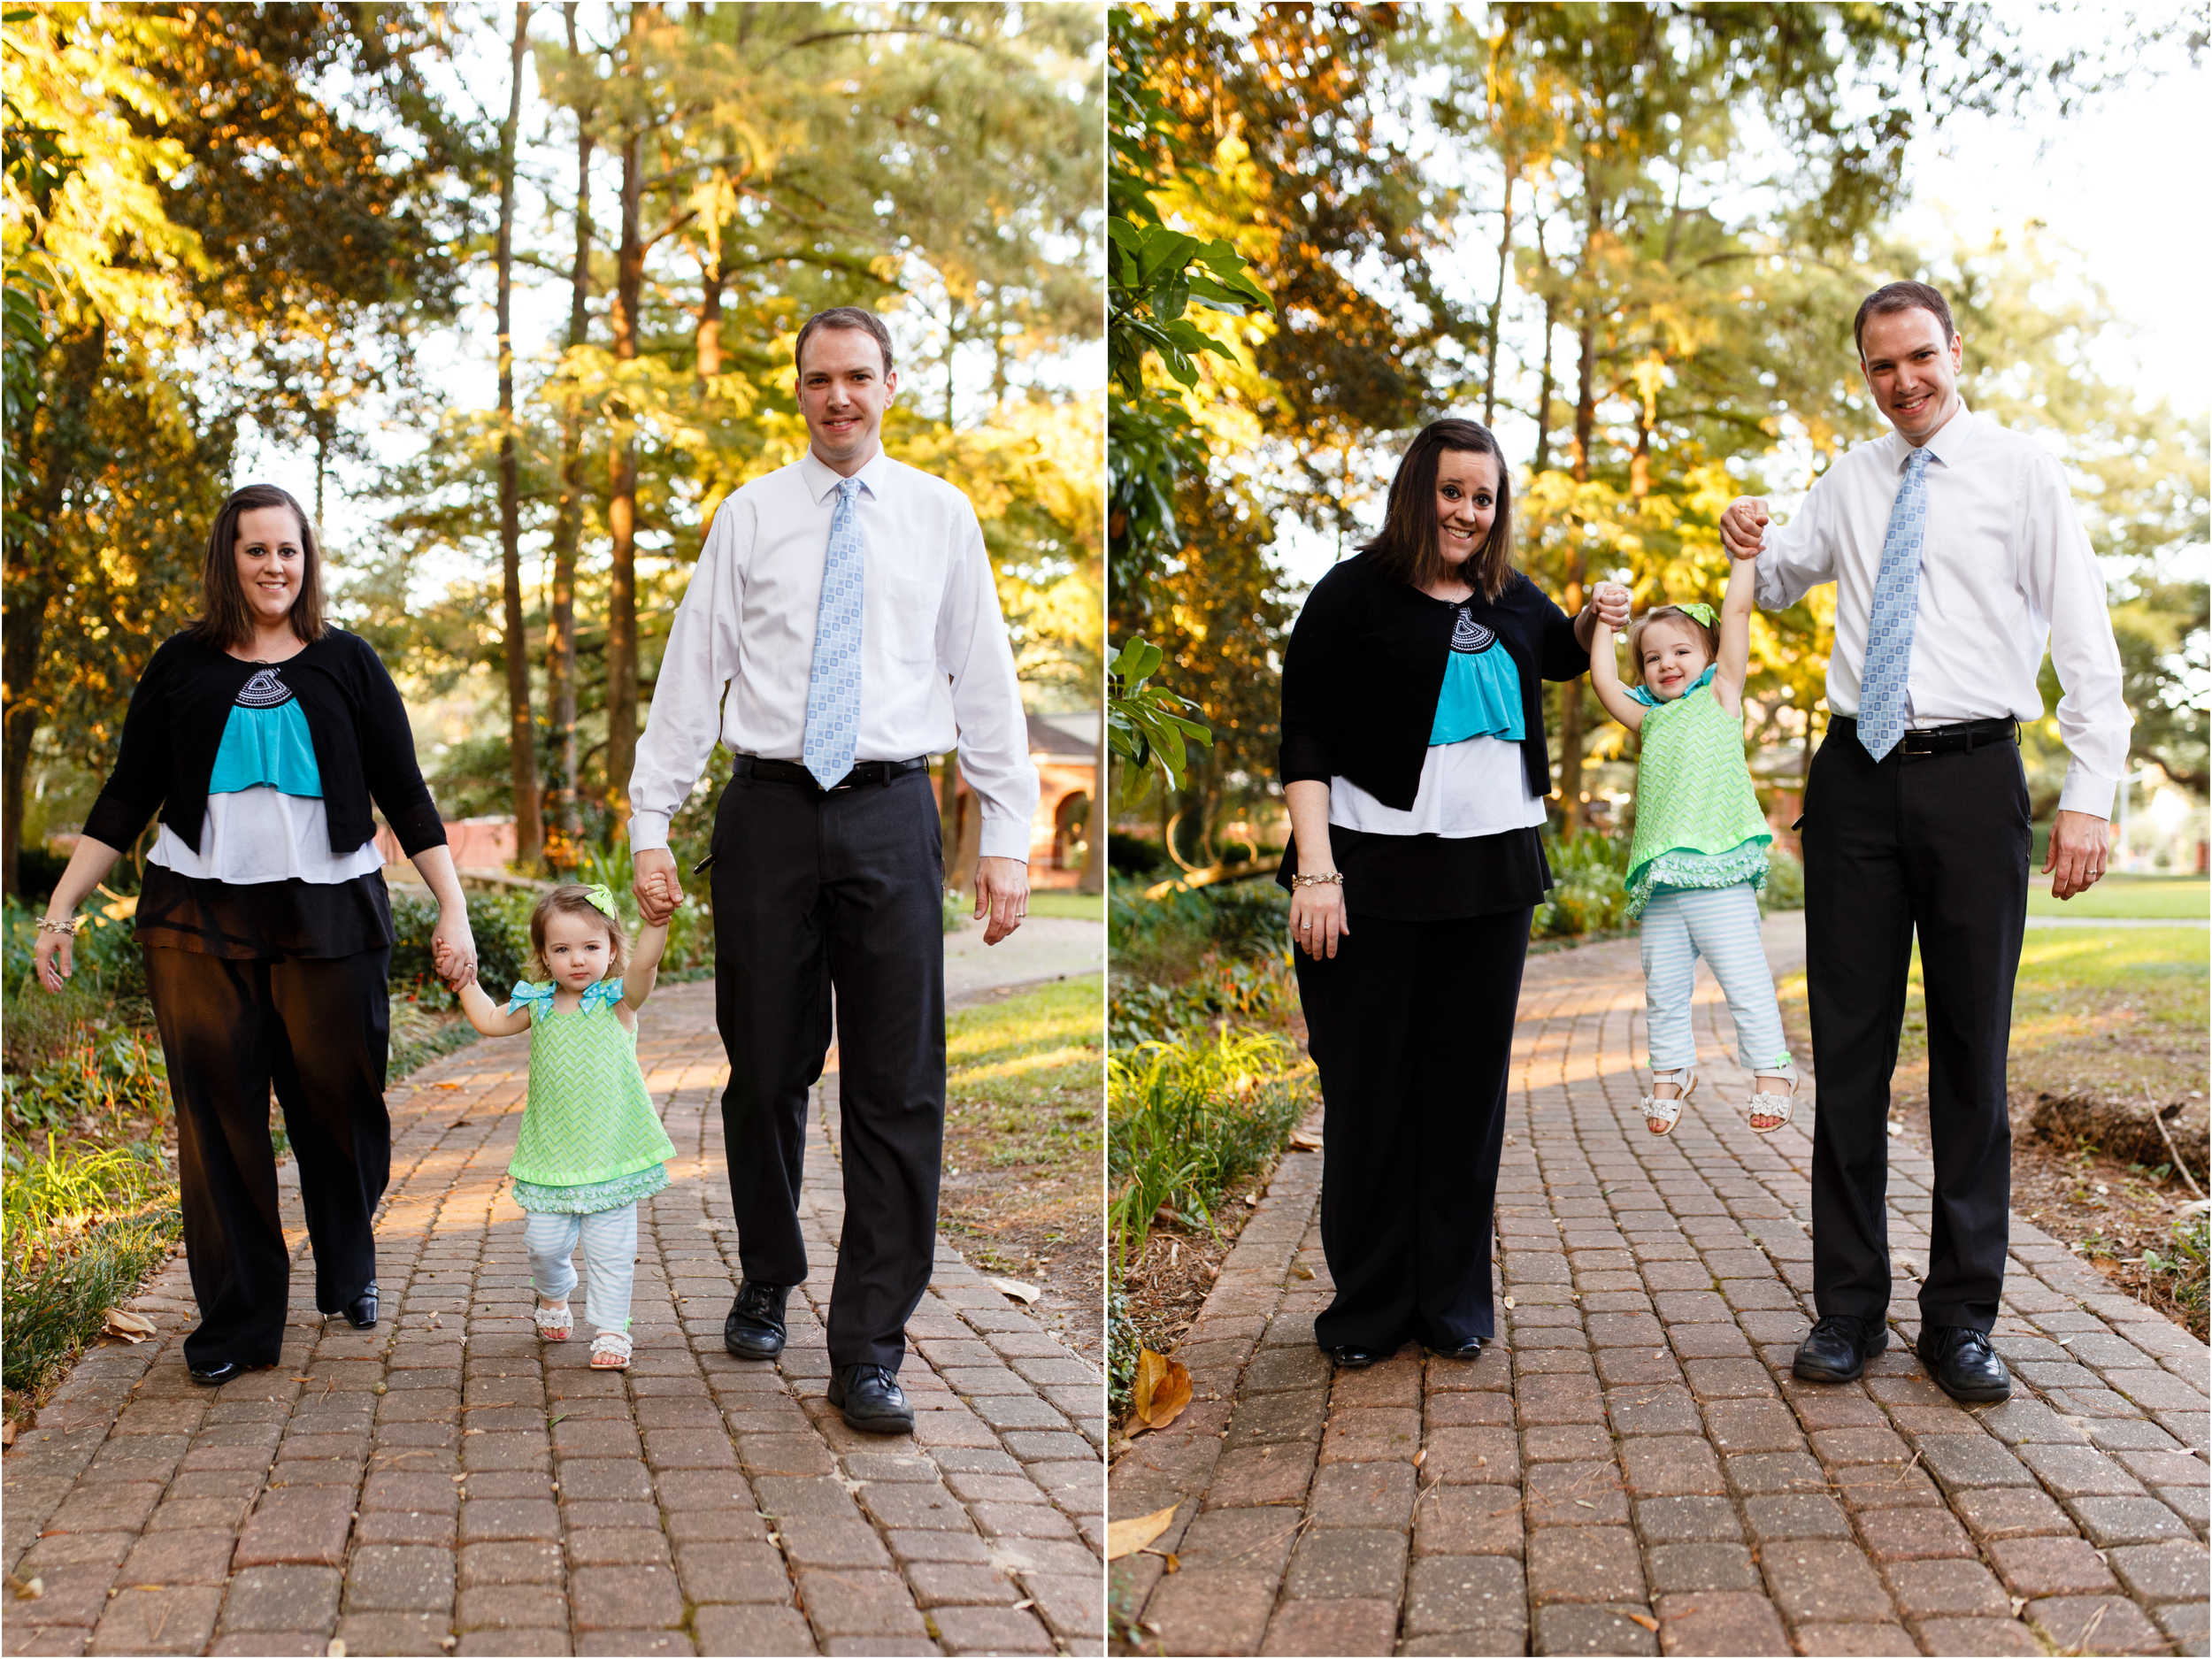 Family-portrait-lafayette-broussard-youngsville-photographer-diptych 3.jpg